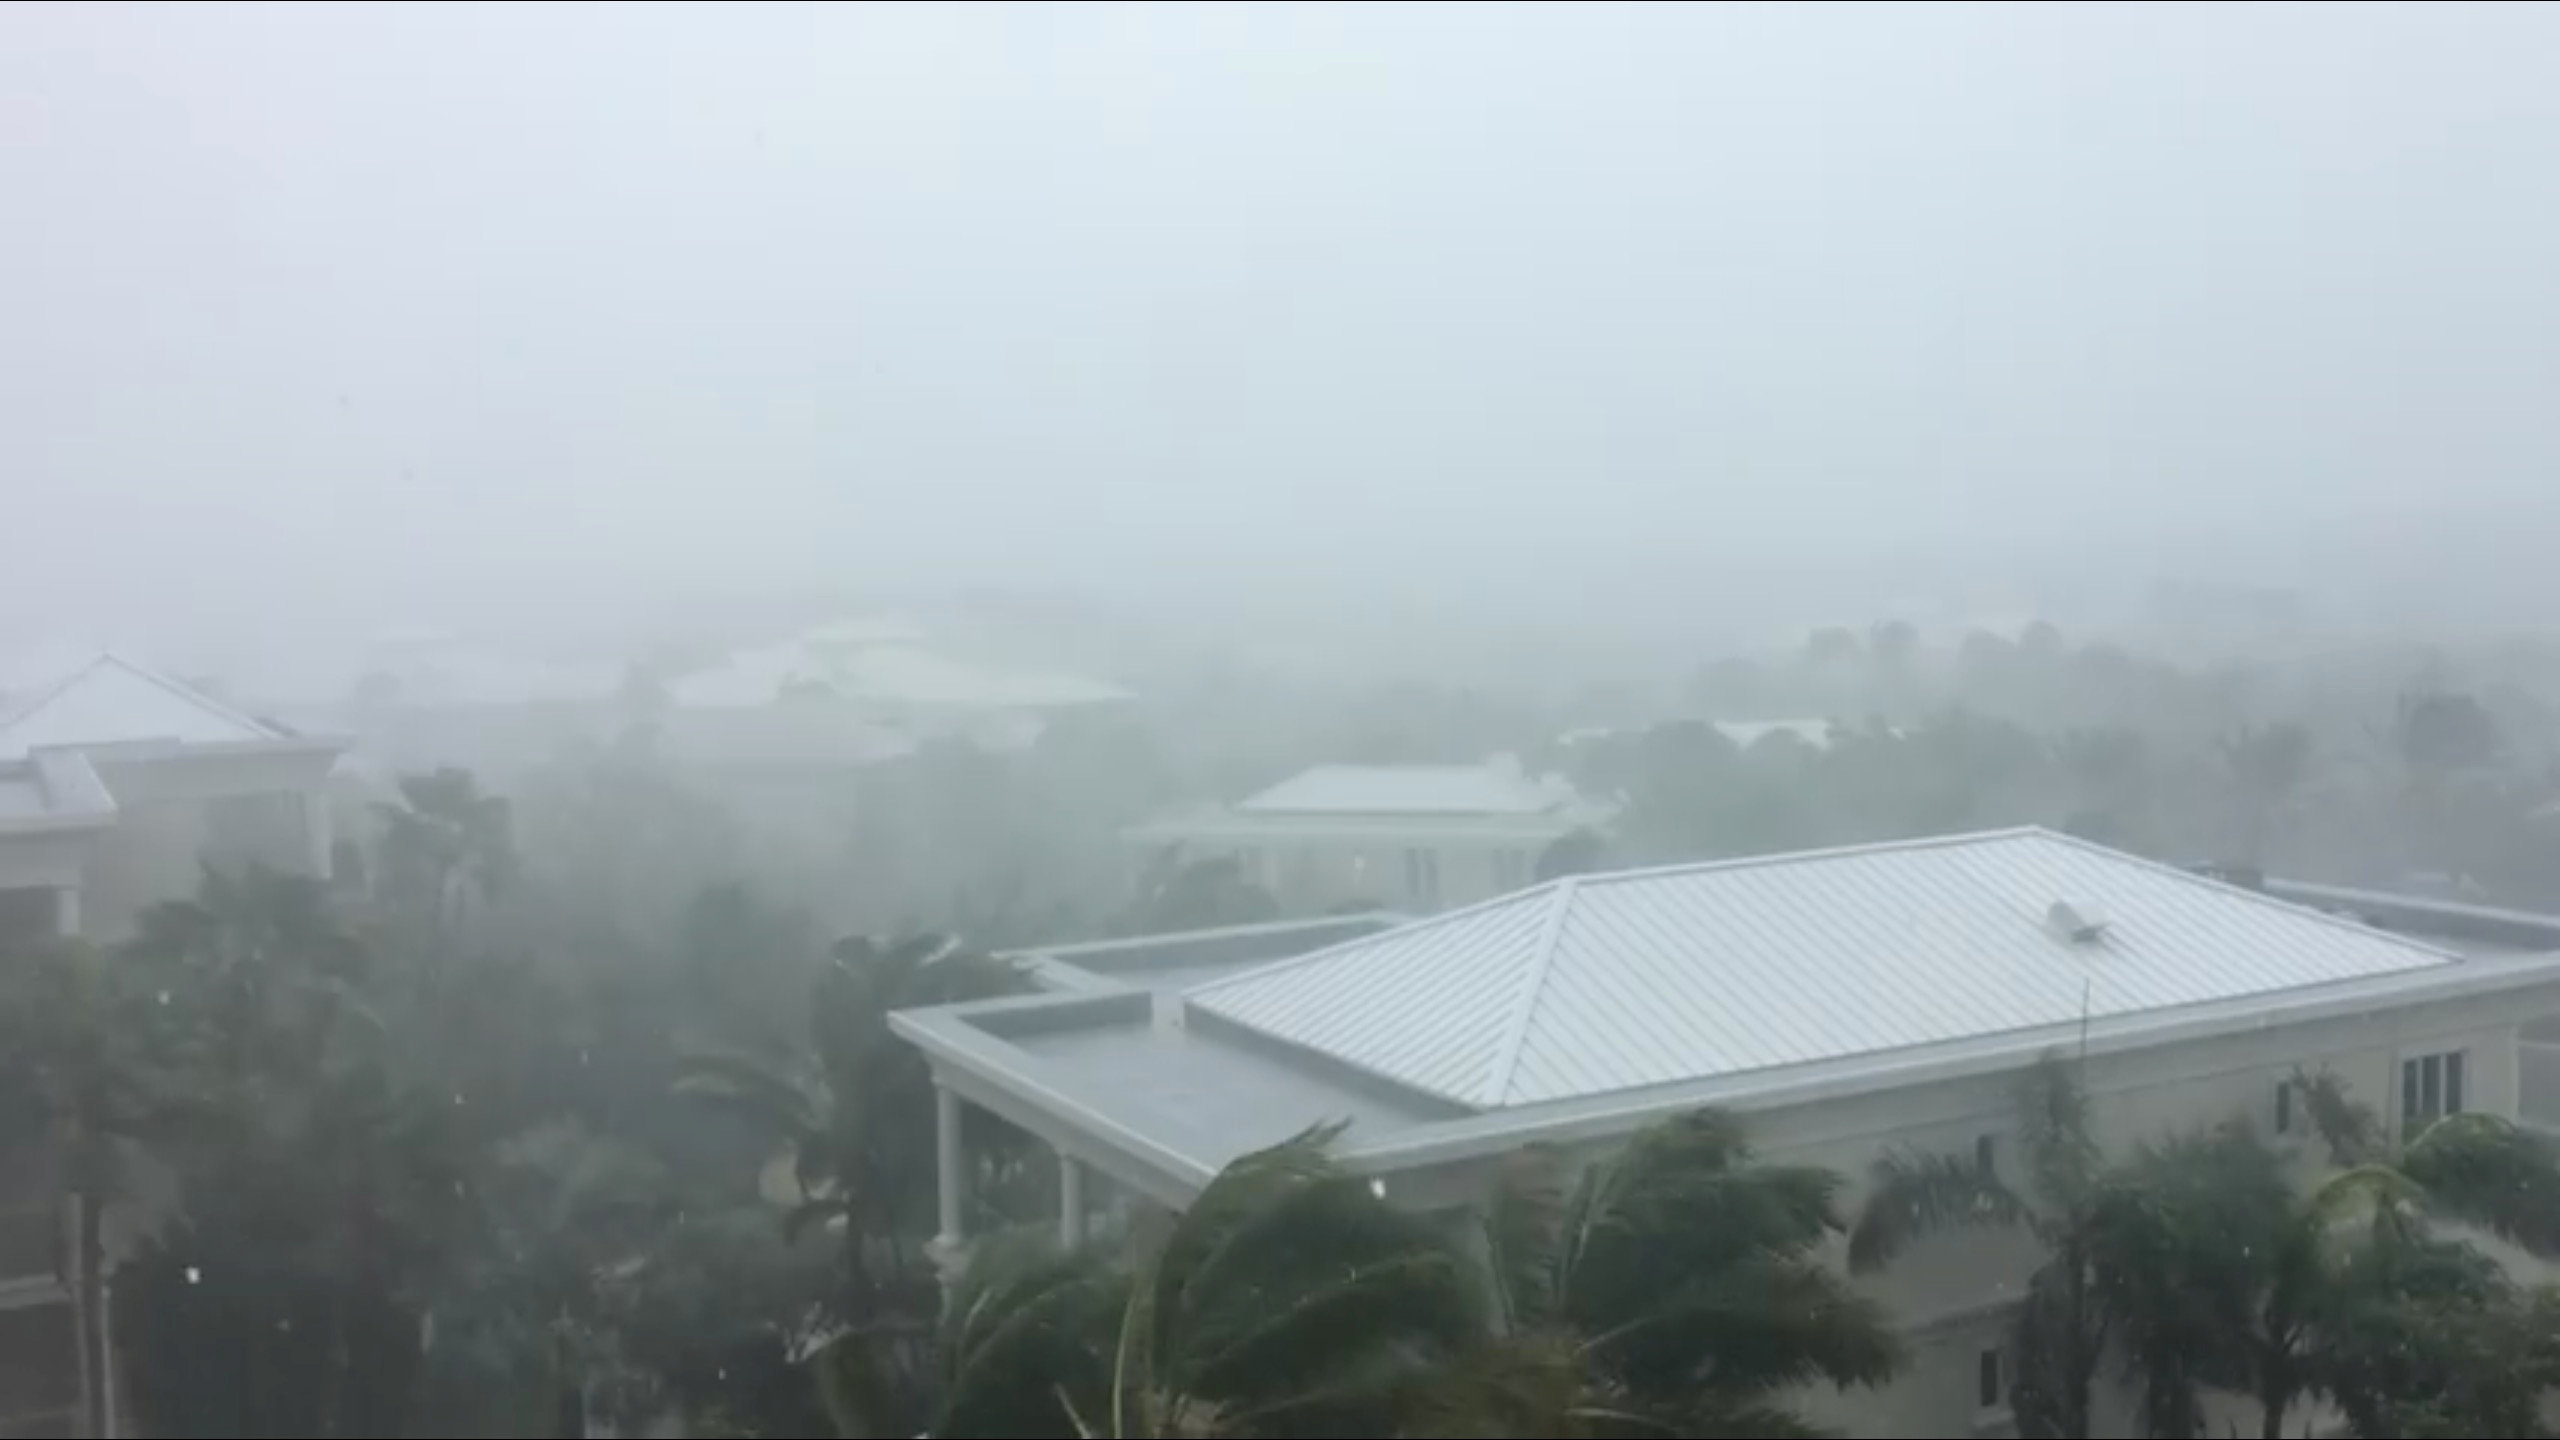 A storm batters as Hurricane Irma descends on Providenciales, in the Turks and Caicos Islands, in this still image taken from September 7, 2017 social media video. MANDATORY CREDIT Aneesa Khan/via REUTERS